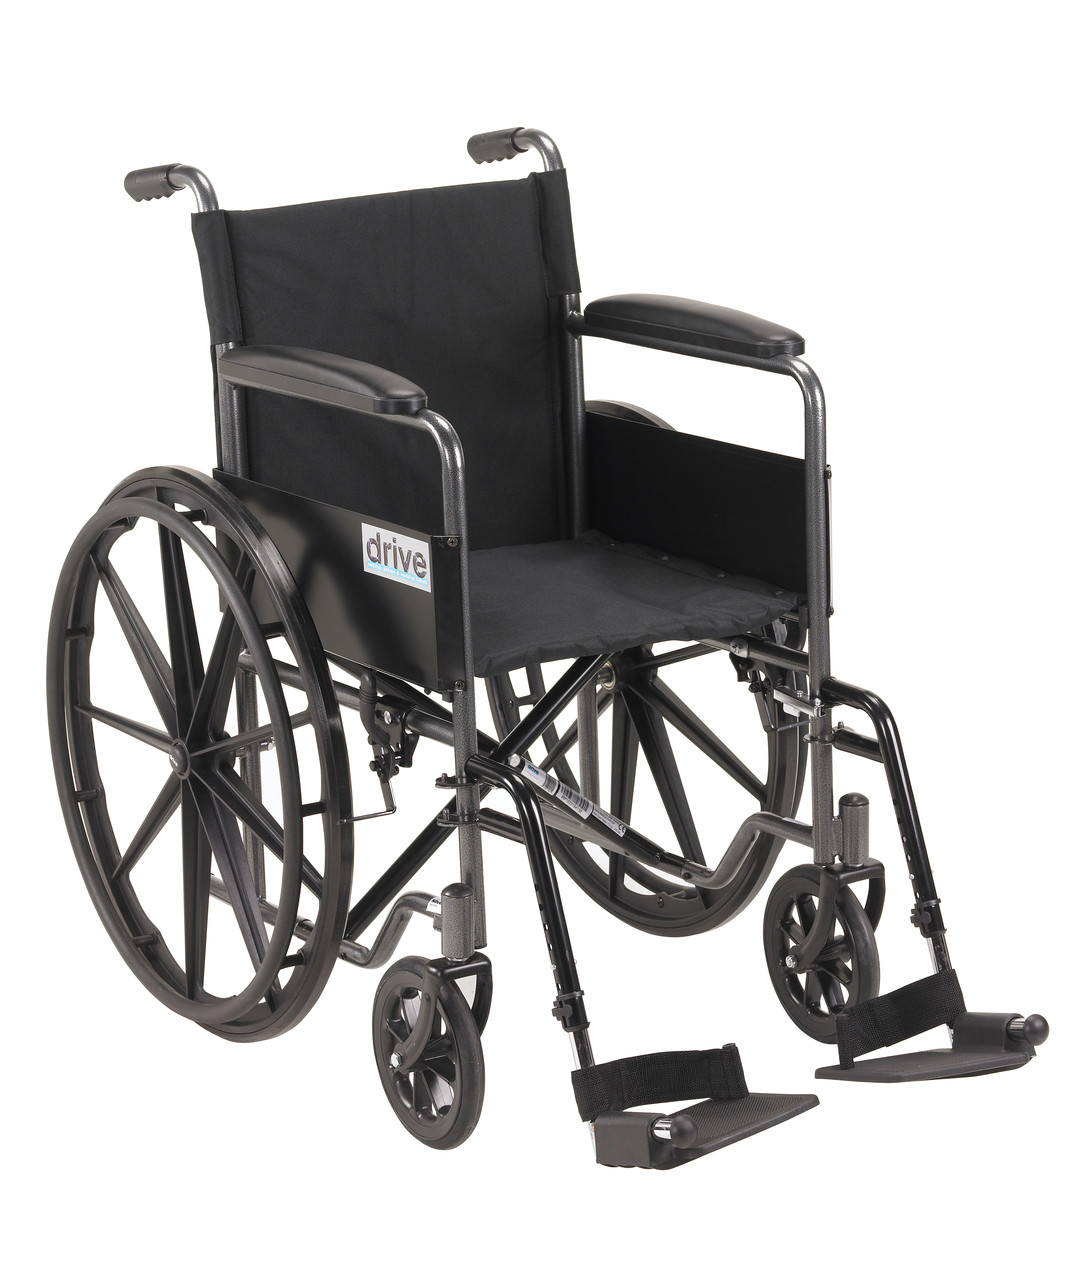 Wondrous Silver Sport 1 Wheelchair With Full Arms And Swing Away Removable Footrest Bralicious Painted Fabric Chair Ideas Braliciousco